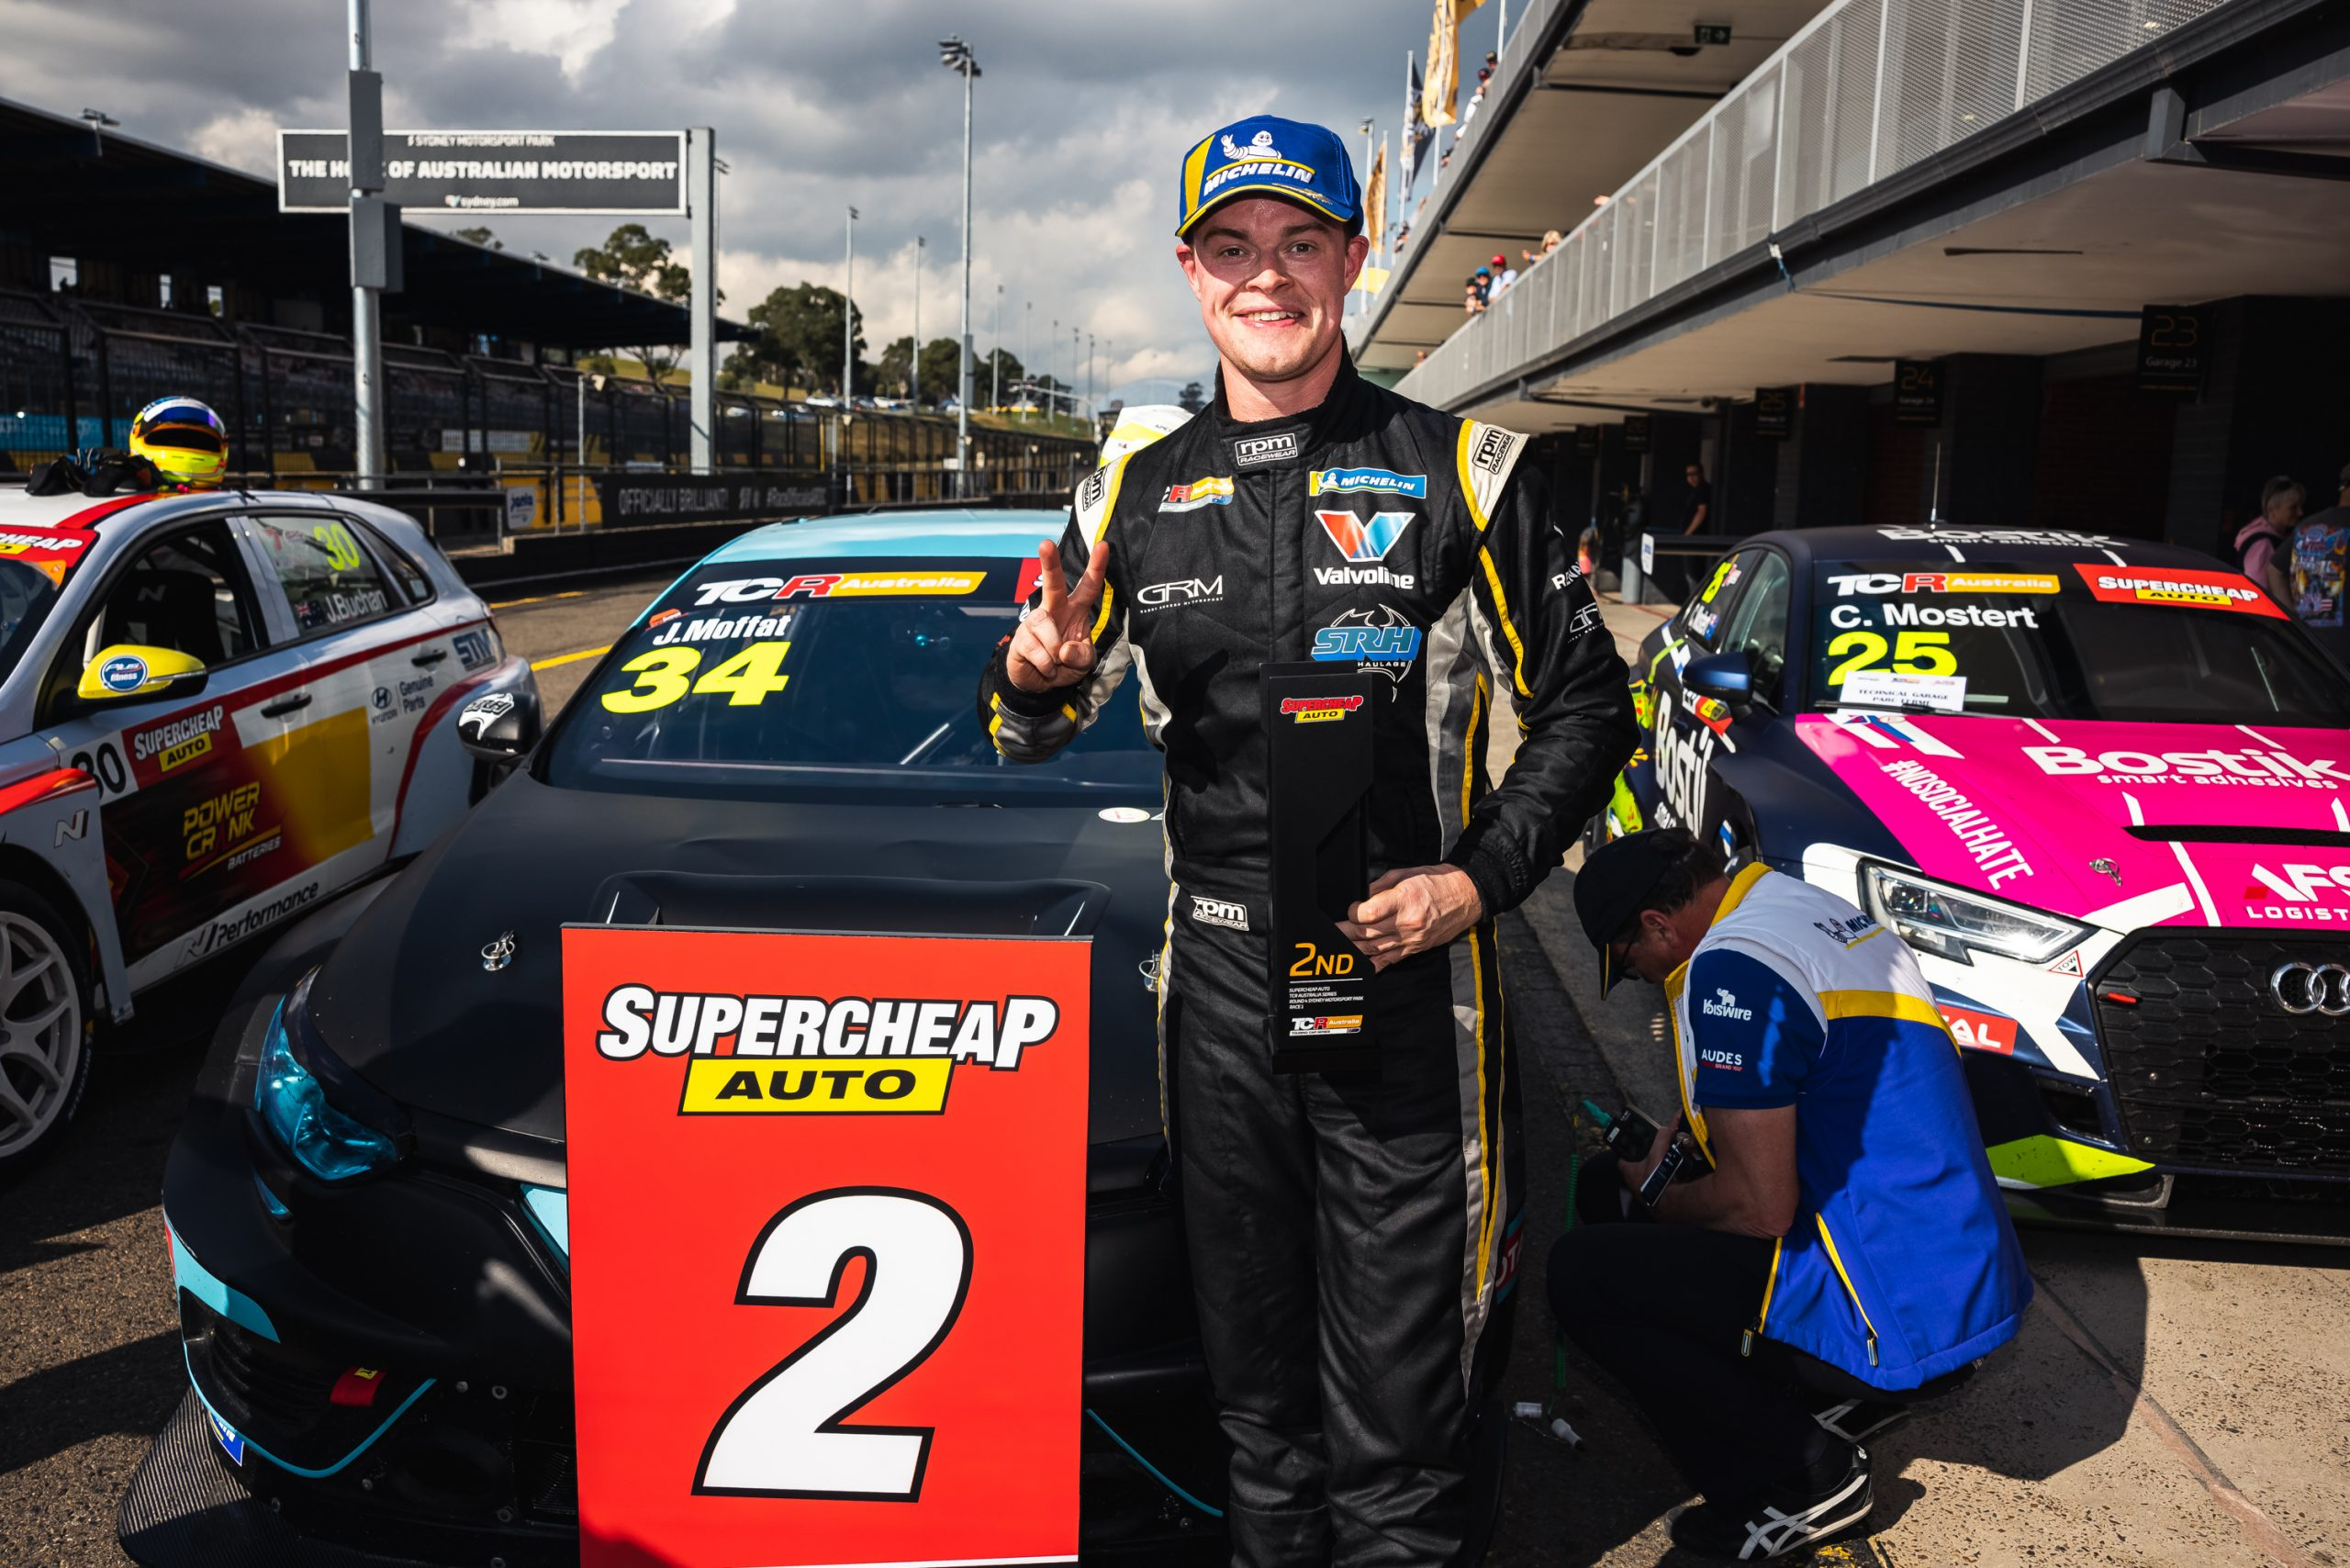 Podium for Renault in opening TCR Australia race